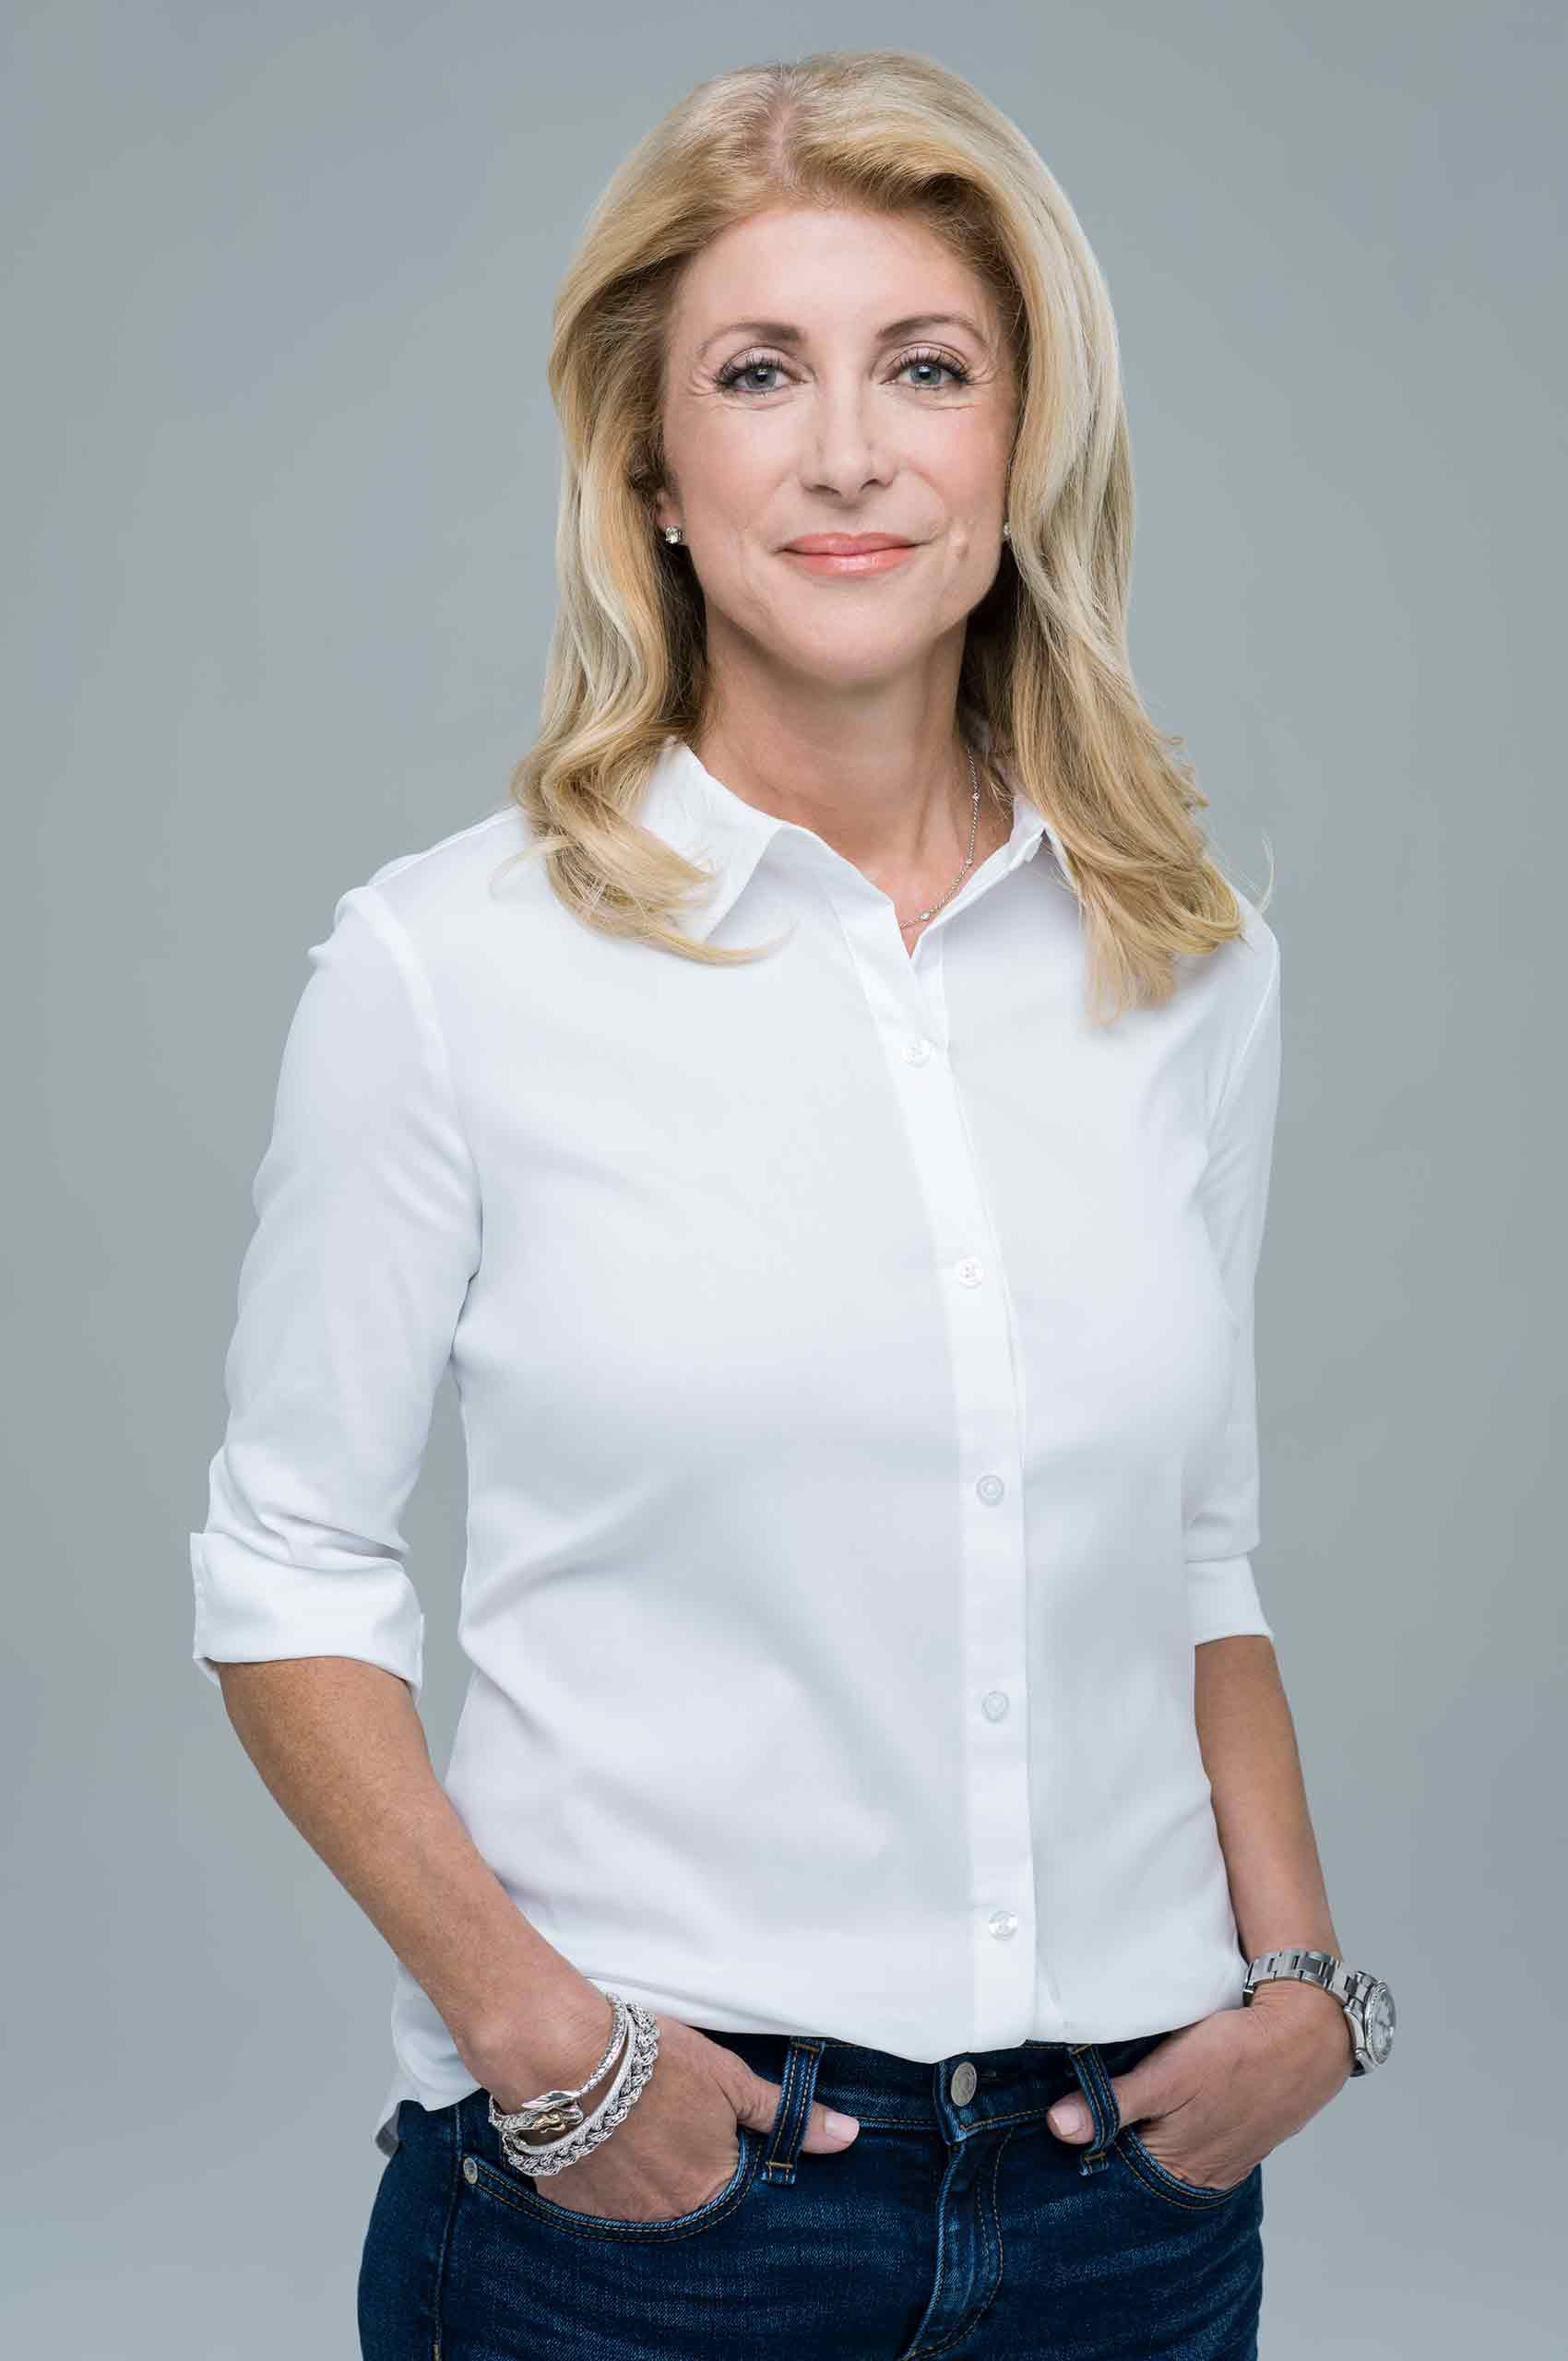 Politician-WendyDavis-by-HenrikOlundPhotography2.jpg